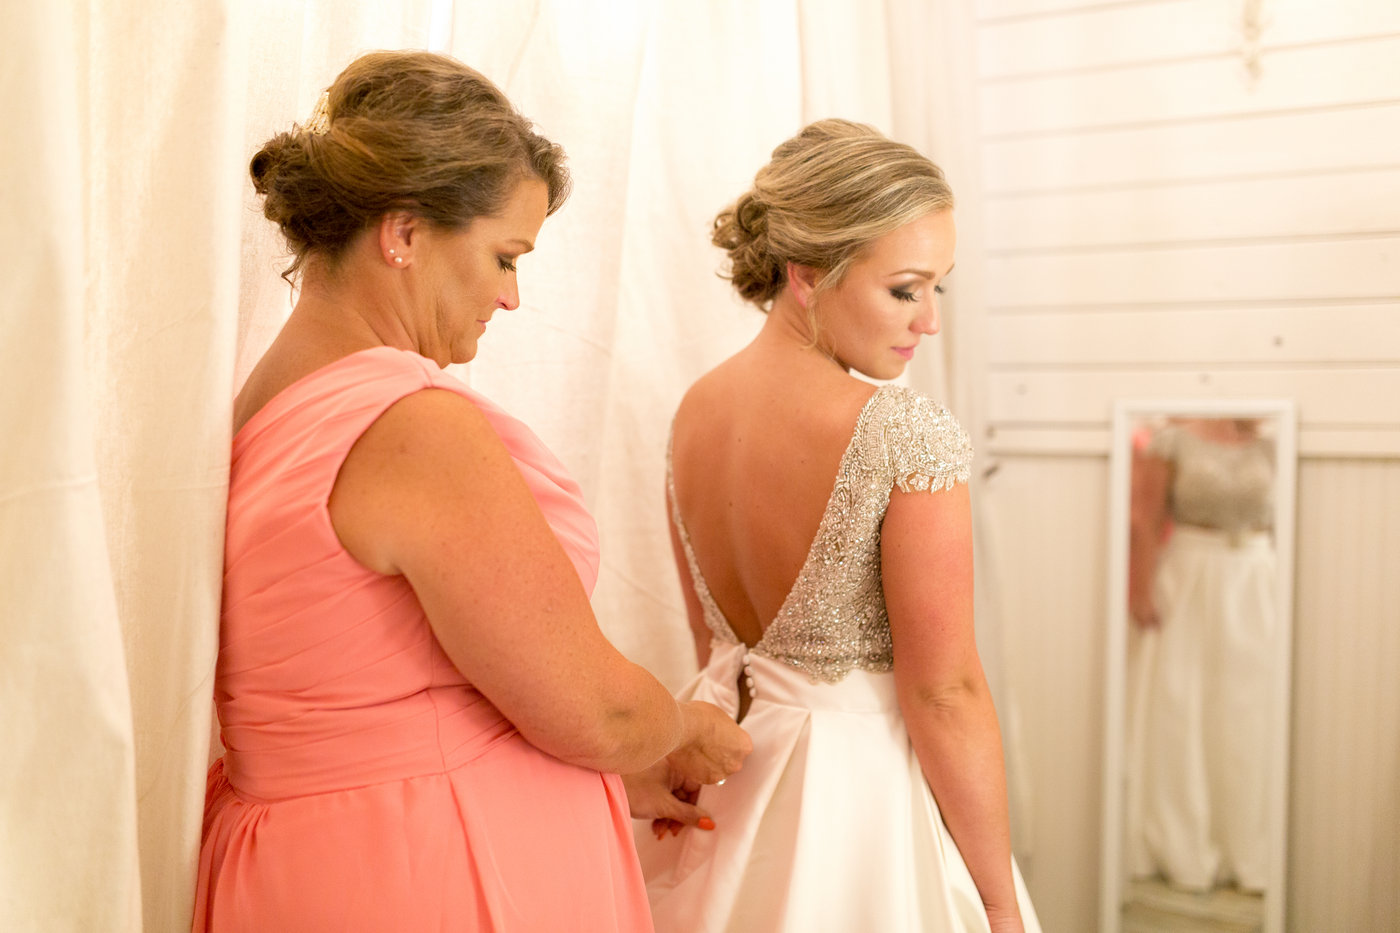 Bride's mom in pink zips up her daughters dress on her wedding day